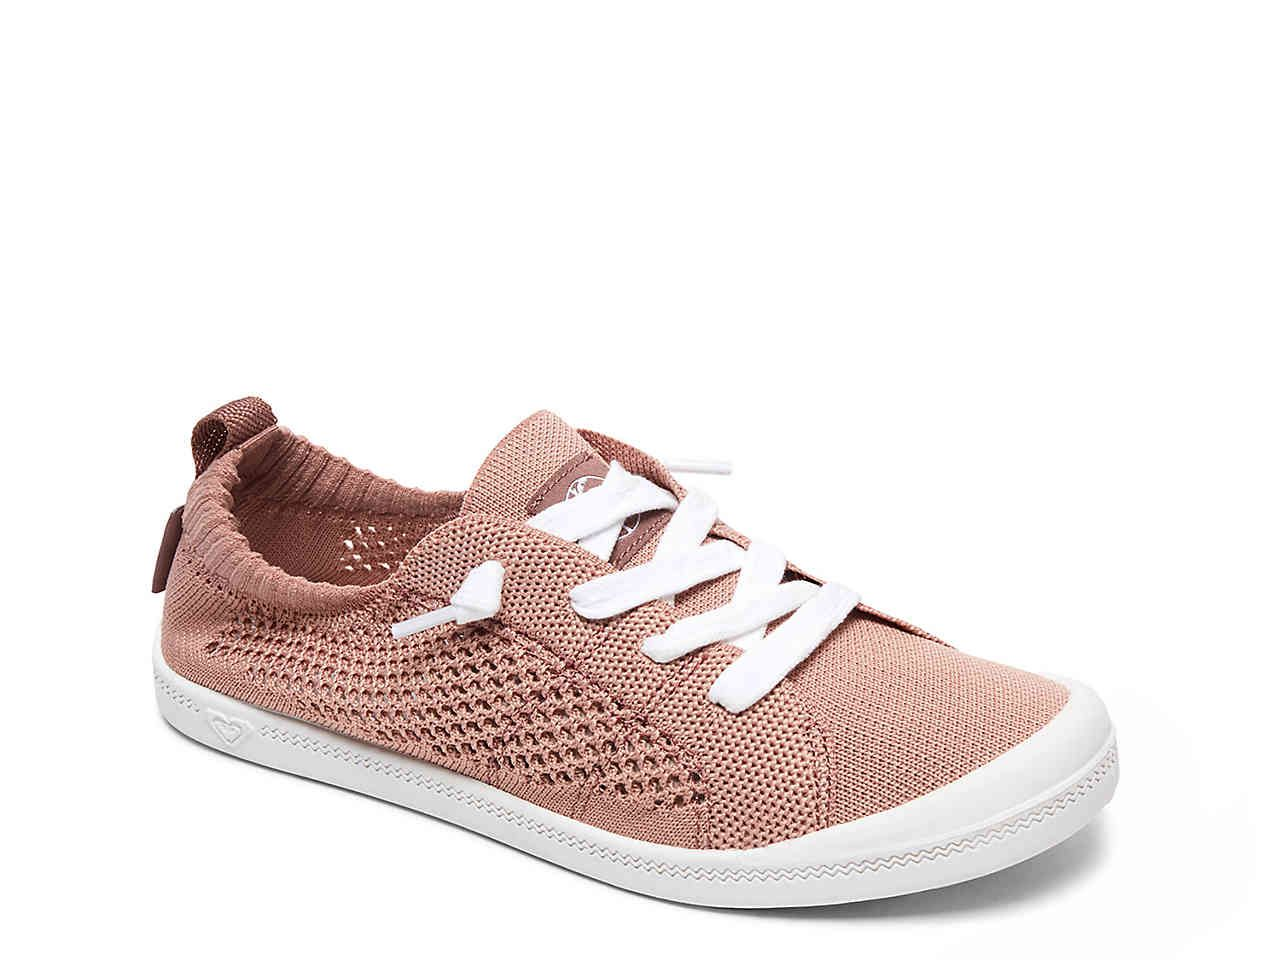 Sneakers, Roxy shoes